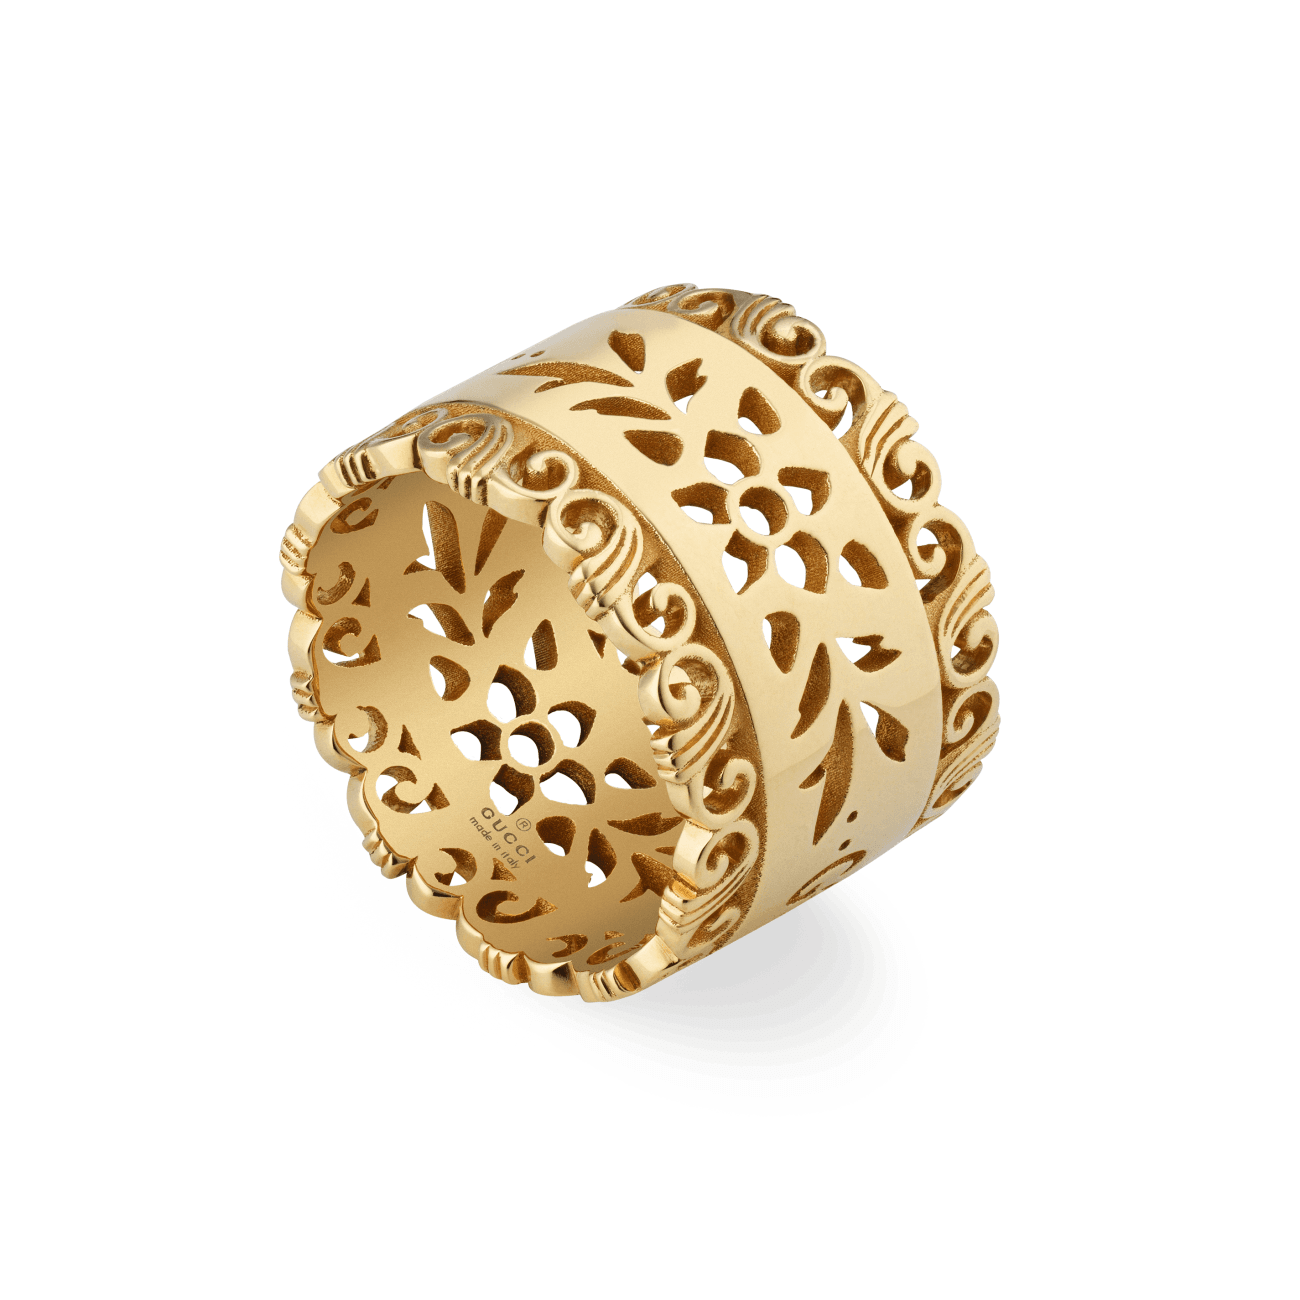 Gucci Jewelry - Icon blooms 14mm ring | Manfredi Jewels